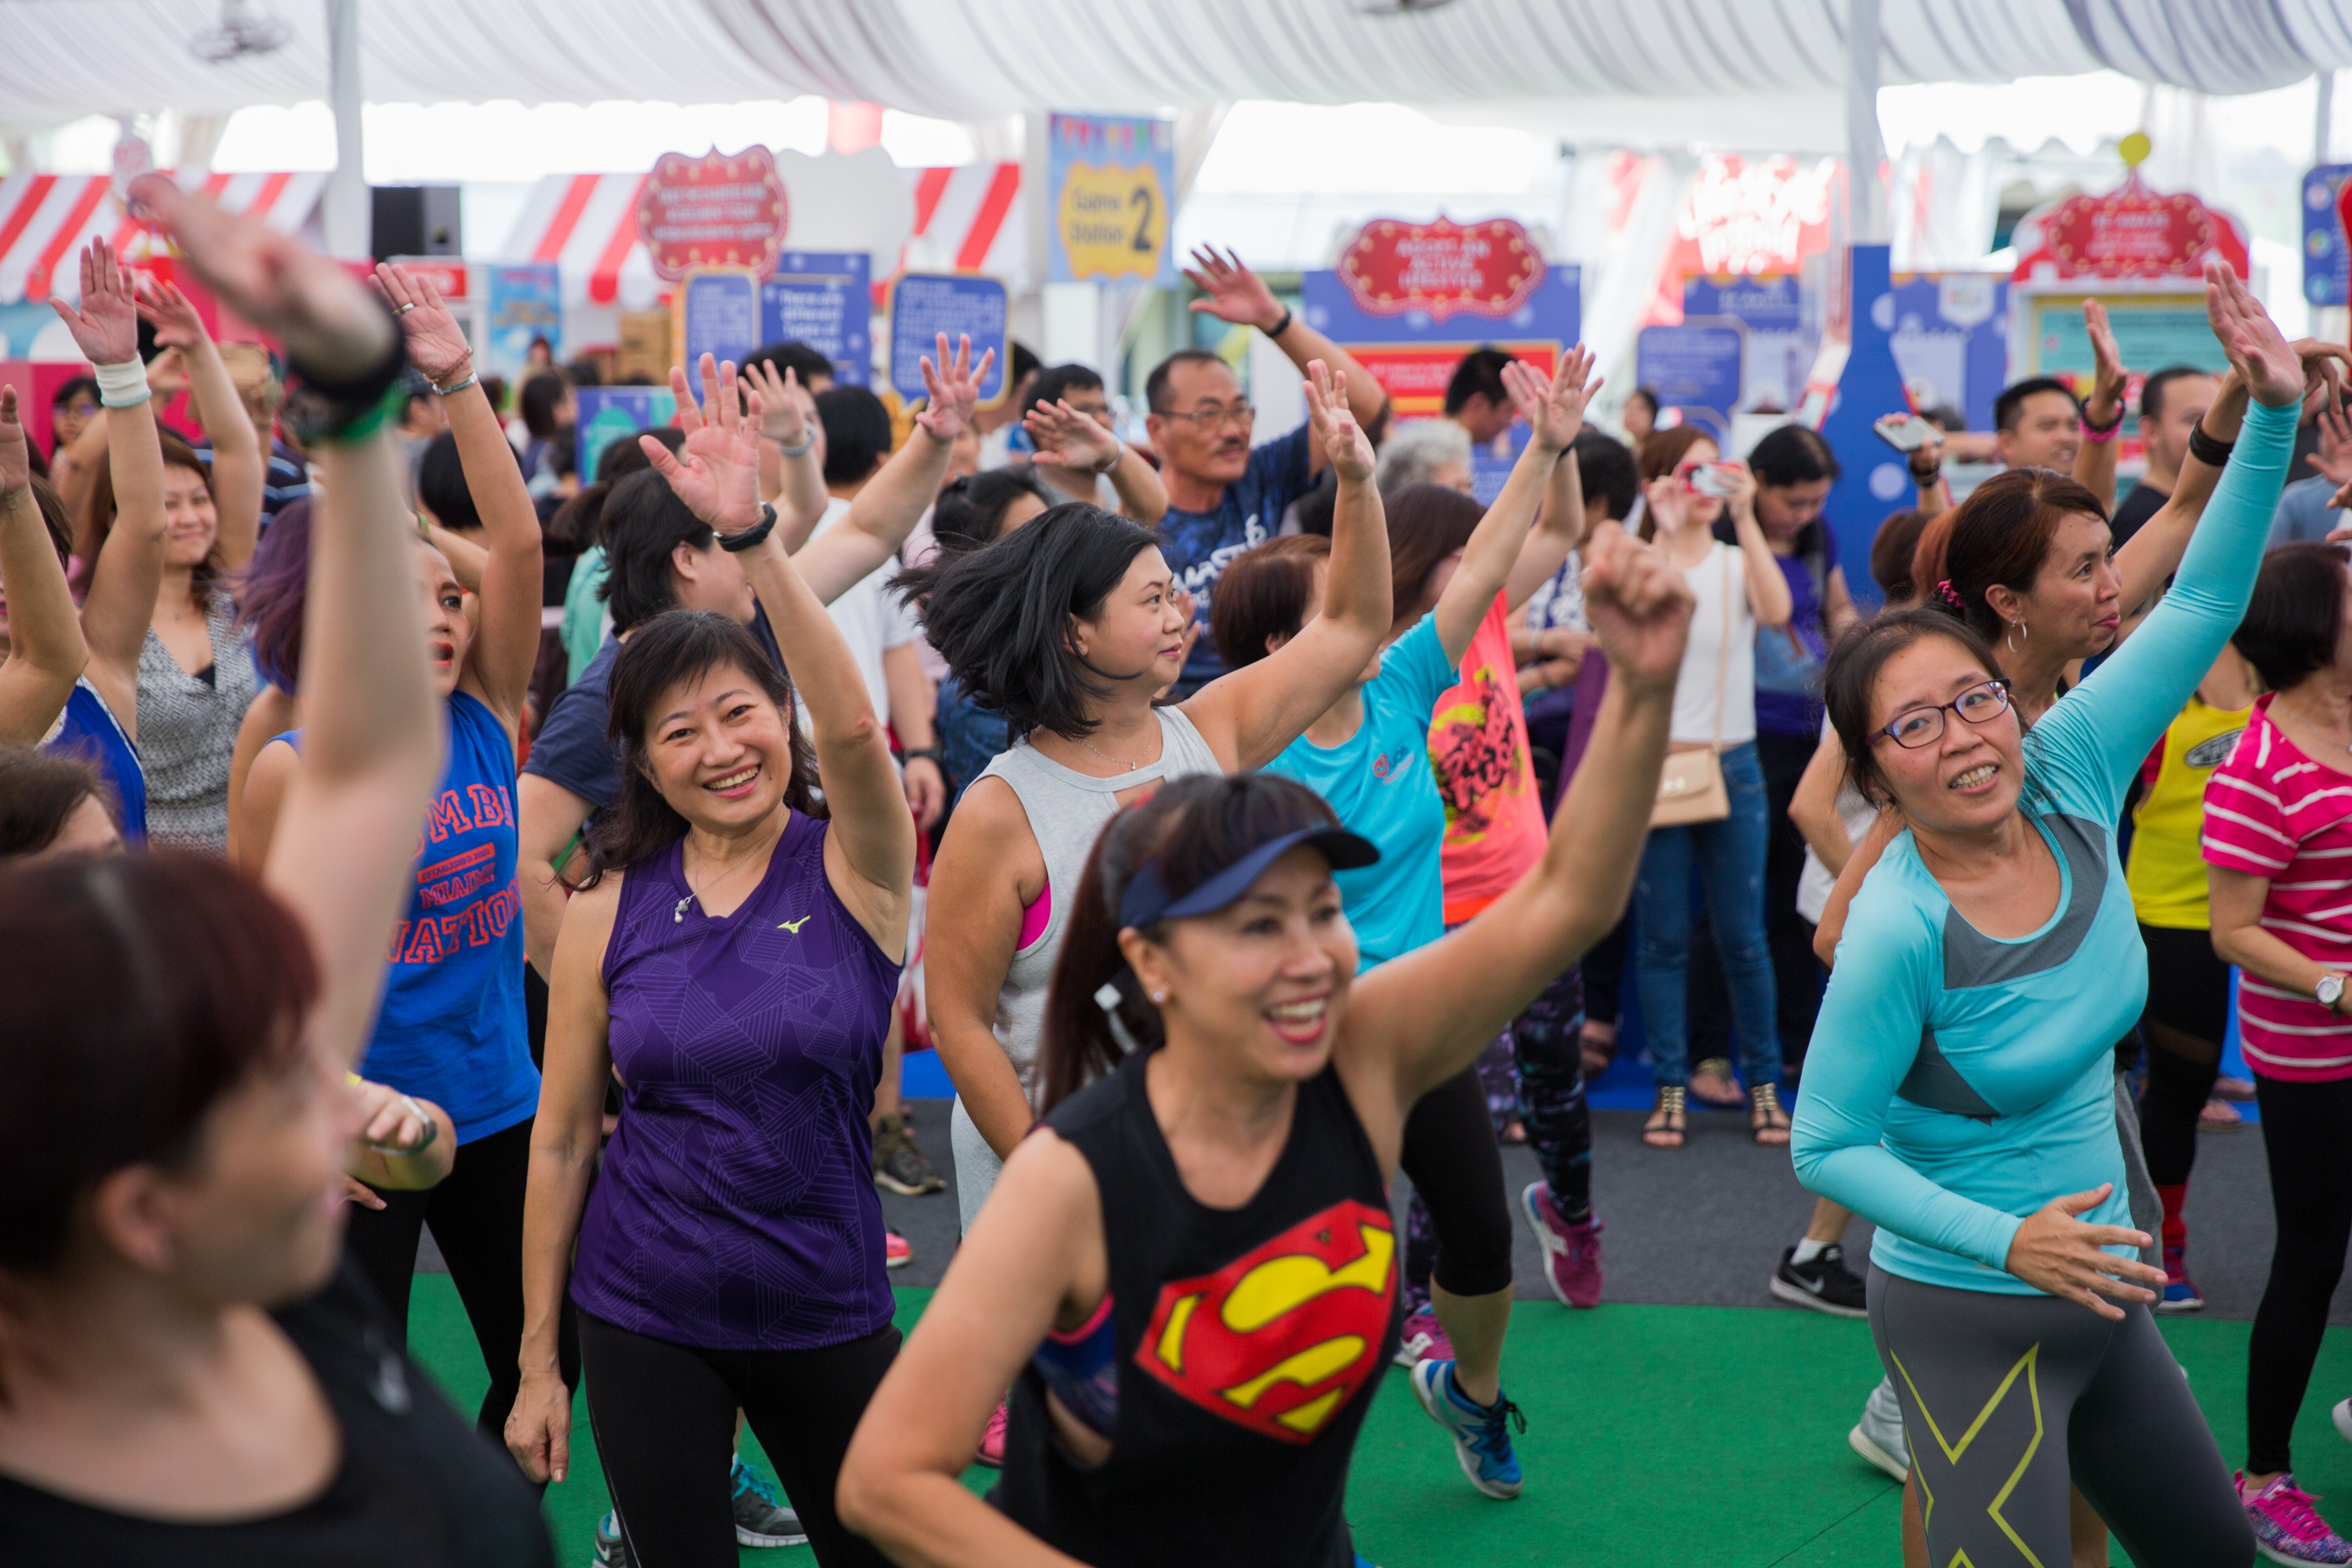 KAI 9256 Healthy Lifestyle Festival SG 2018: An adventure for the whole family